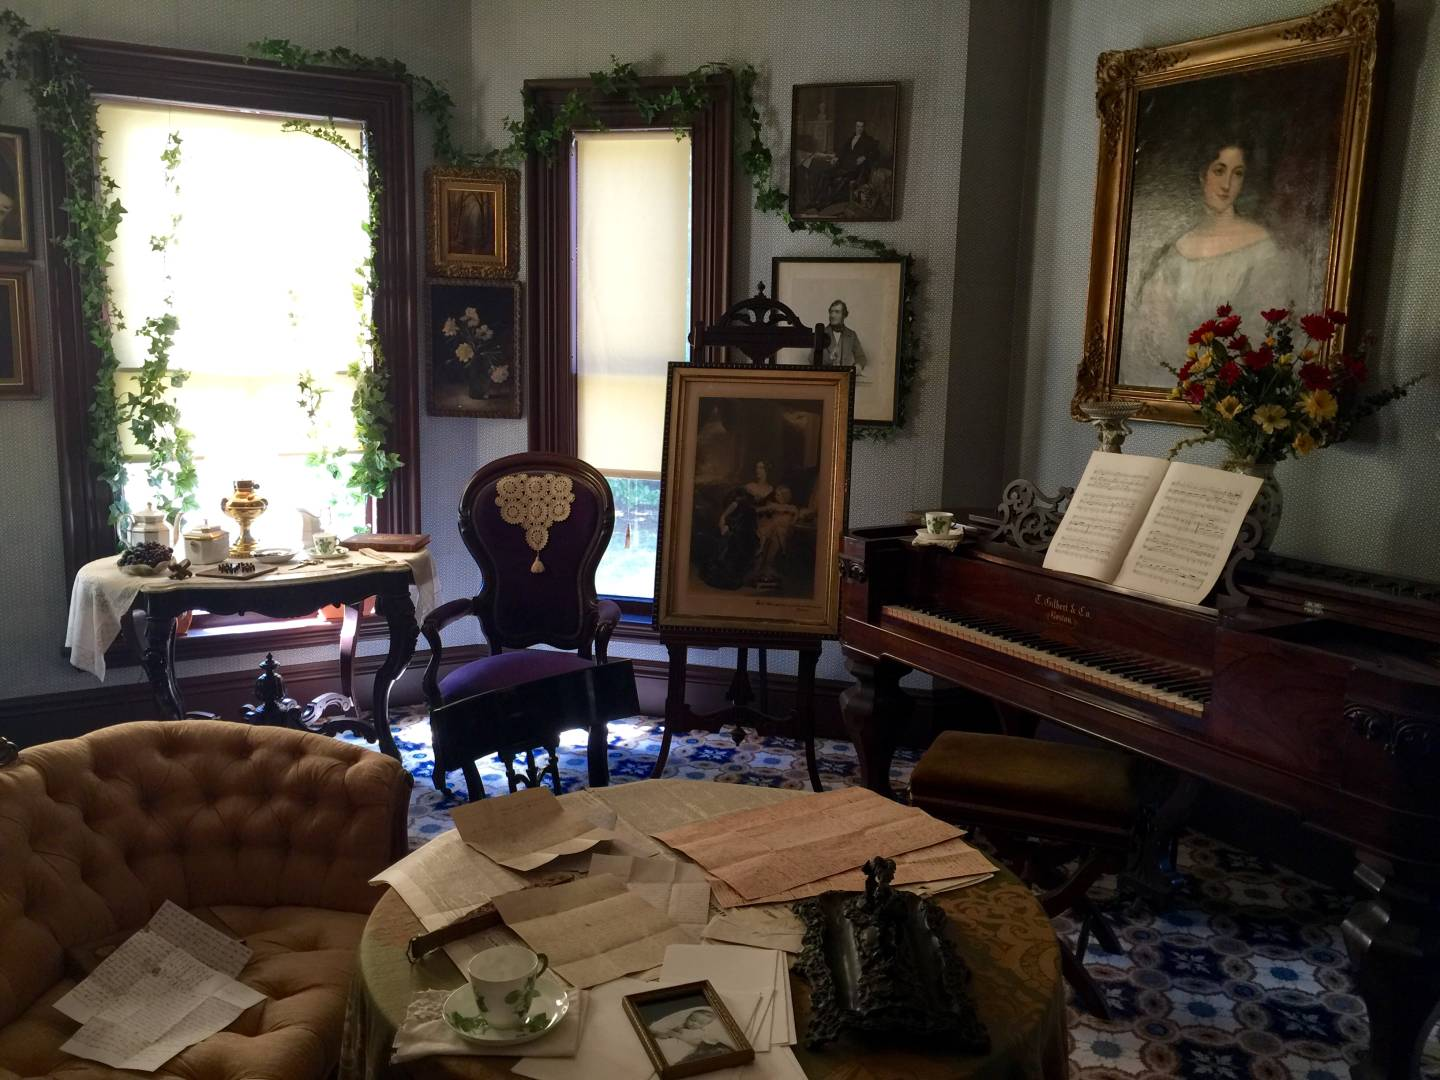 Inside Harriet Beecher Stowe's house